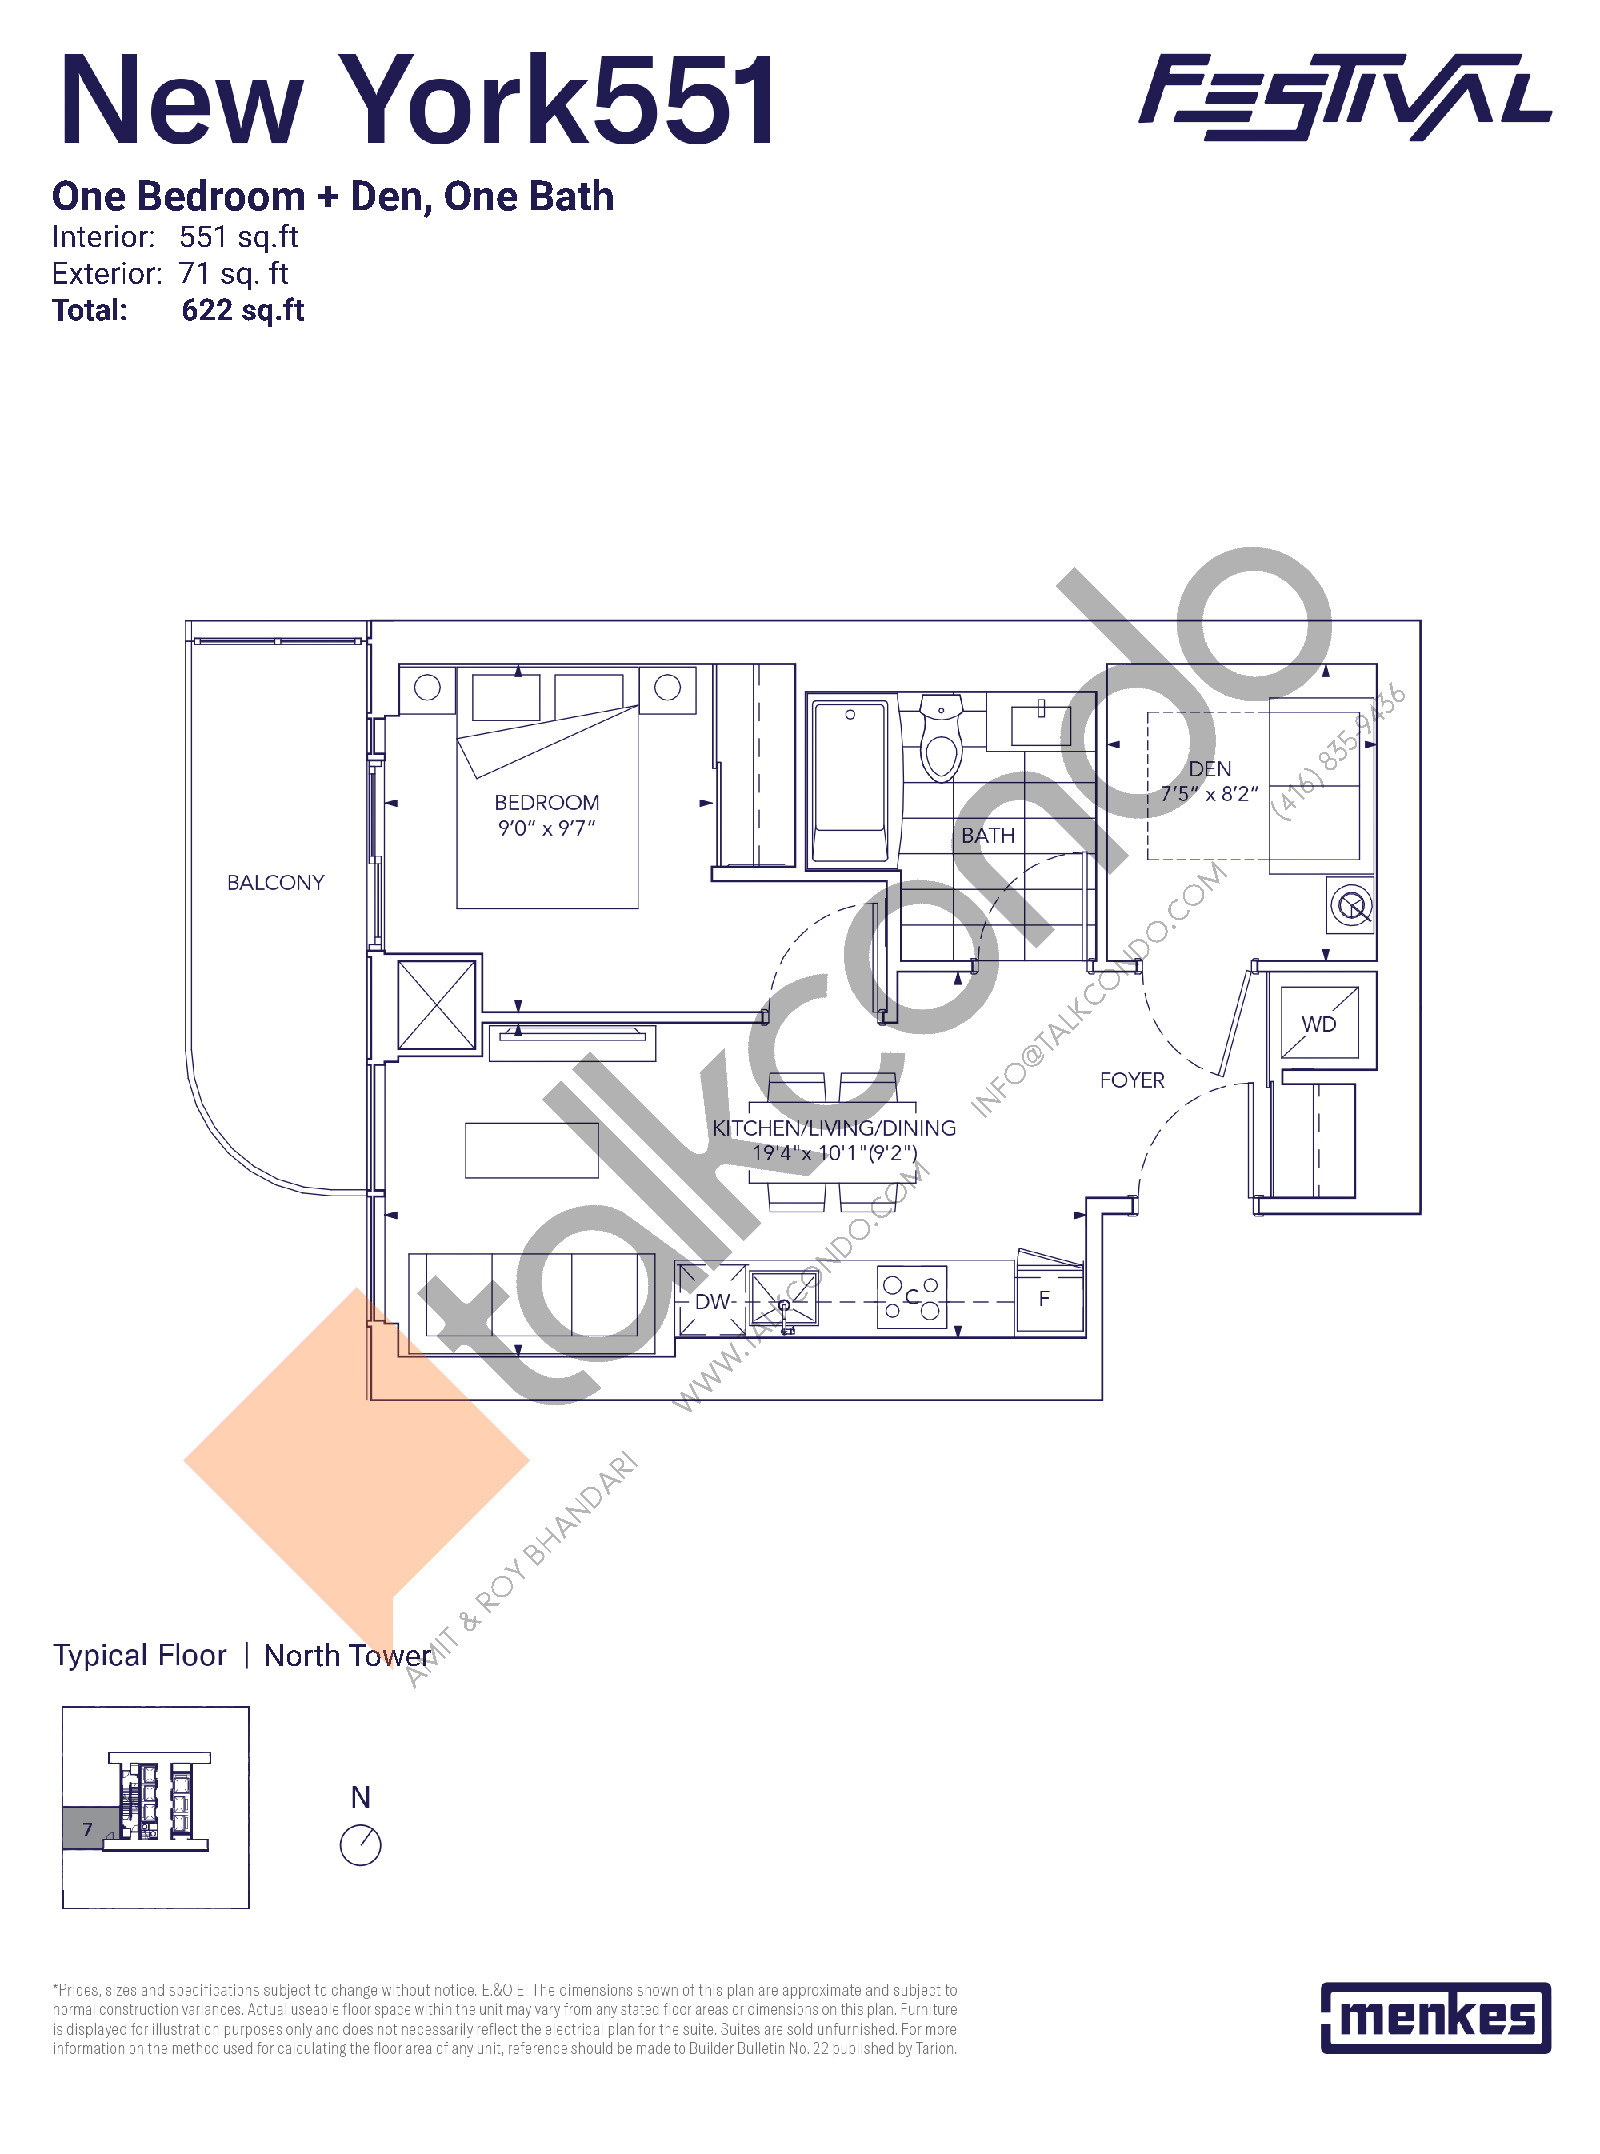 New York 551 Floor Plan at Festival Condos North Tower - 551 sq.ft